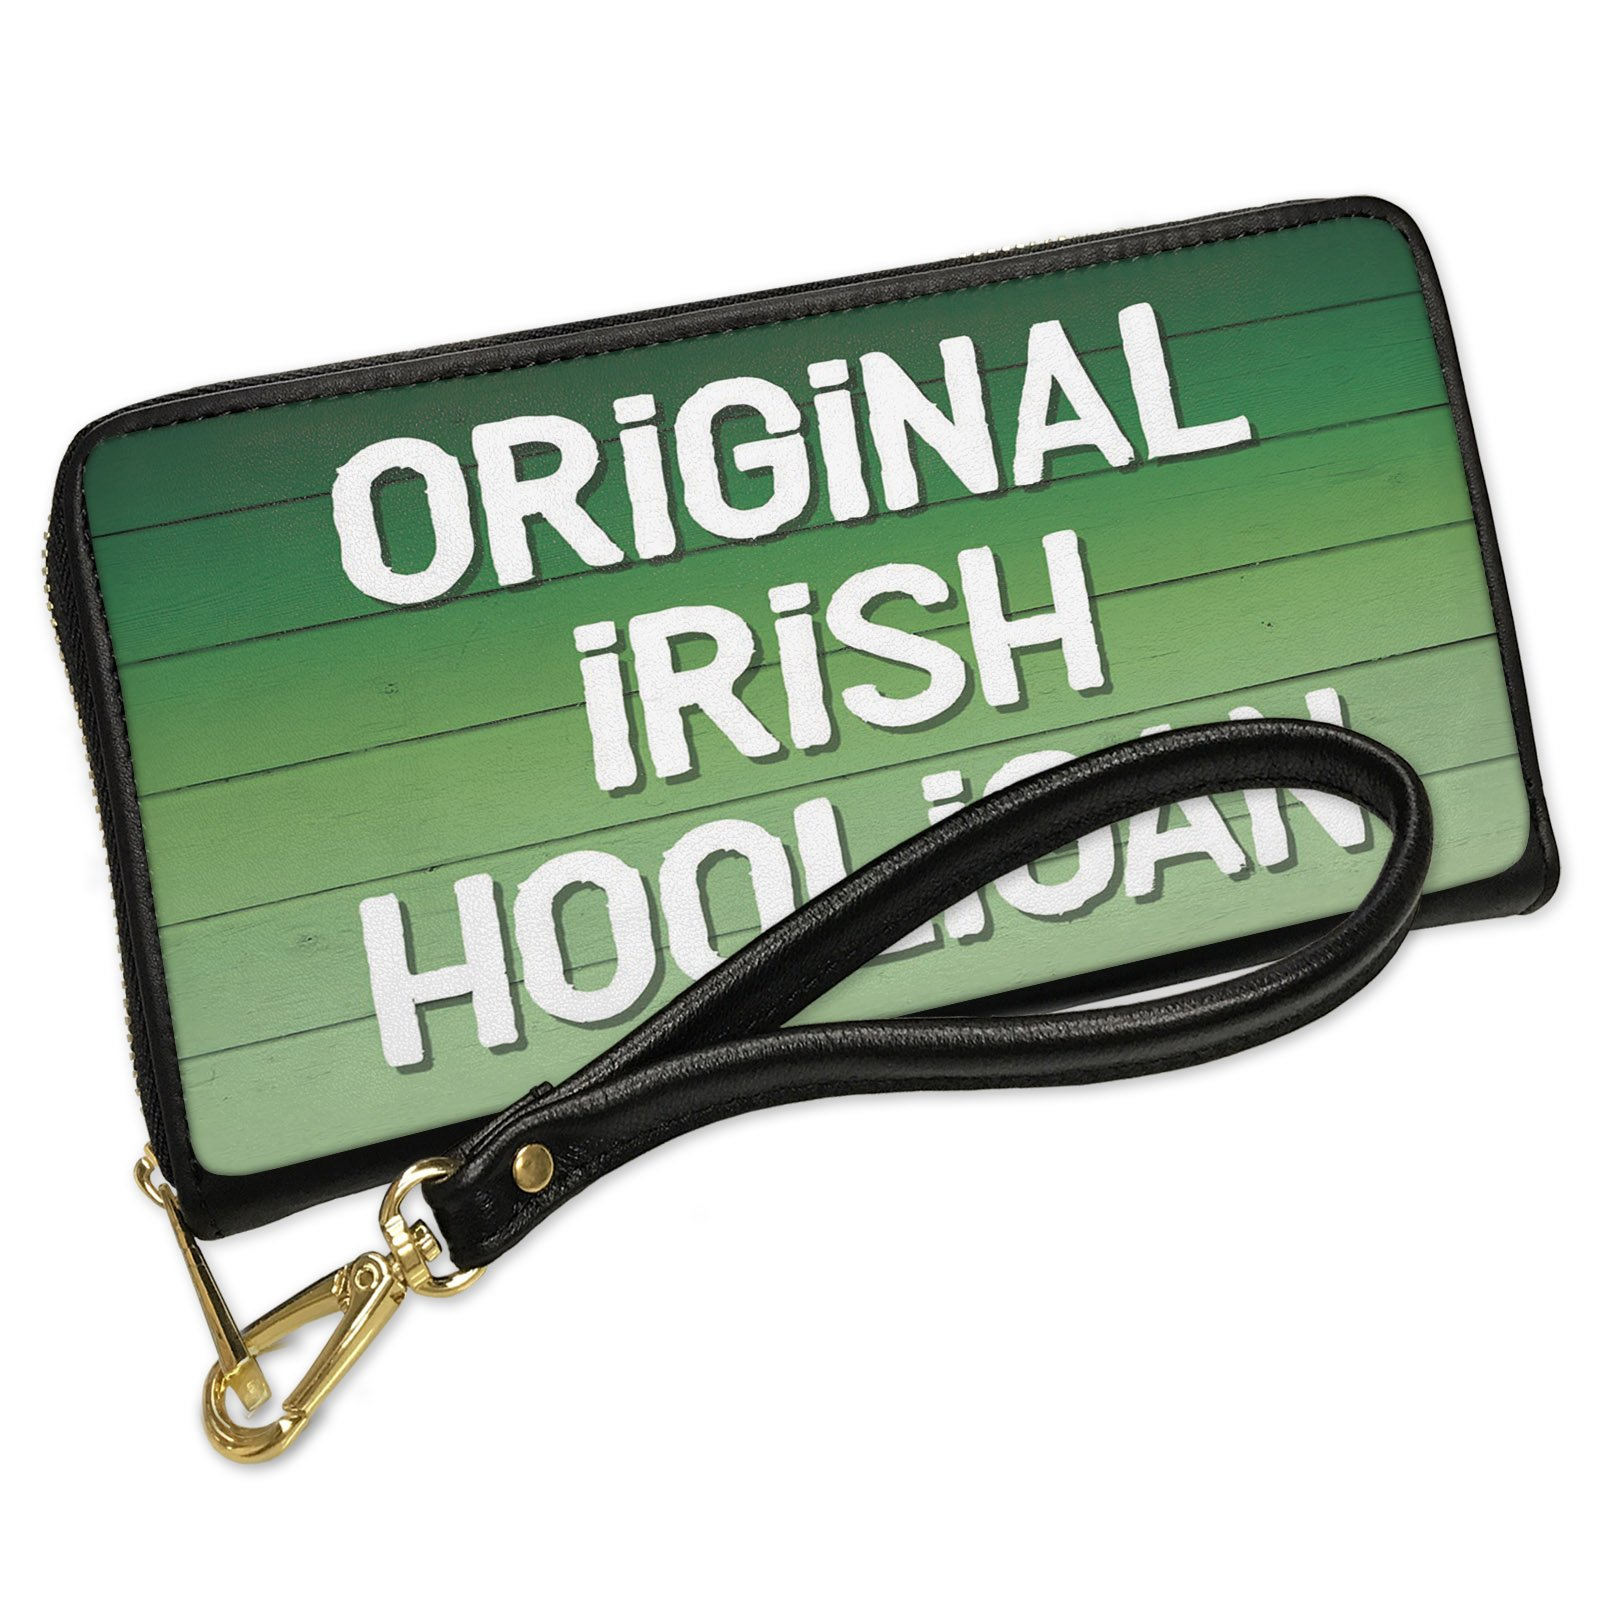 Wallet Clutch Original Irish Hooligan St. Patrick's Day Green Fade with Removable Wristlet Strap Neonblond